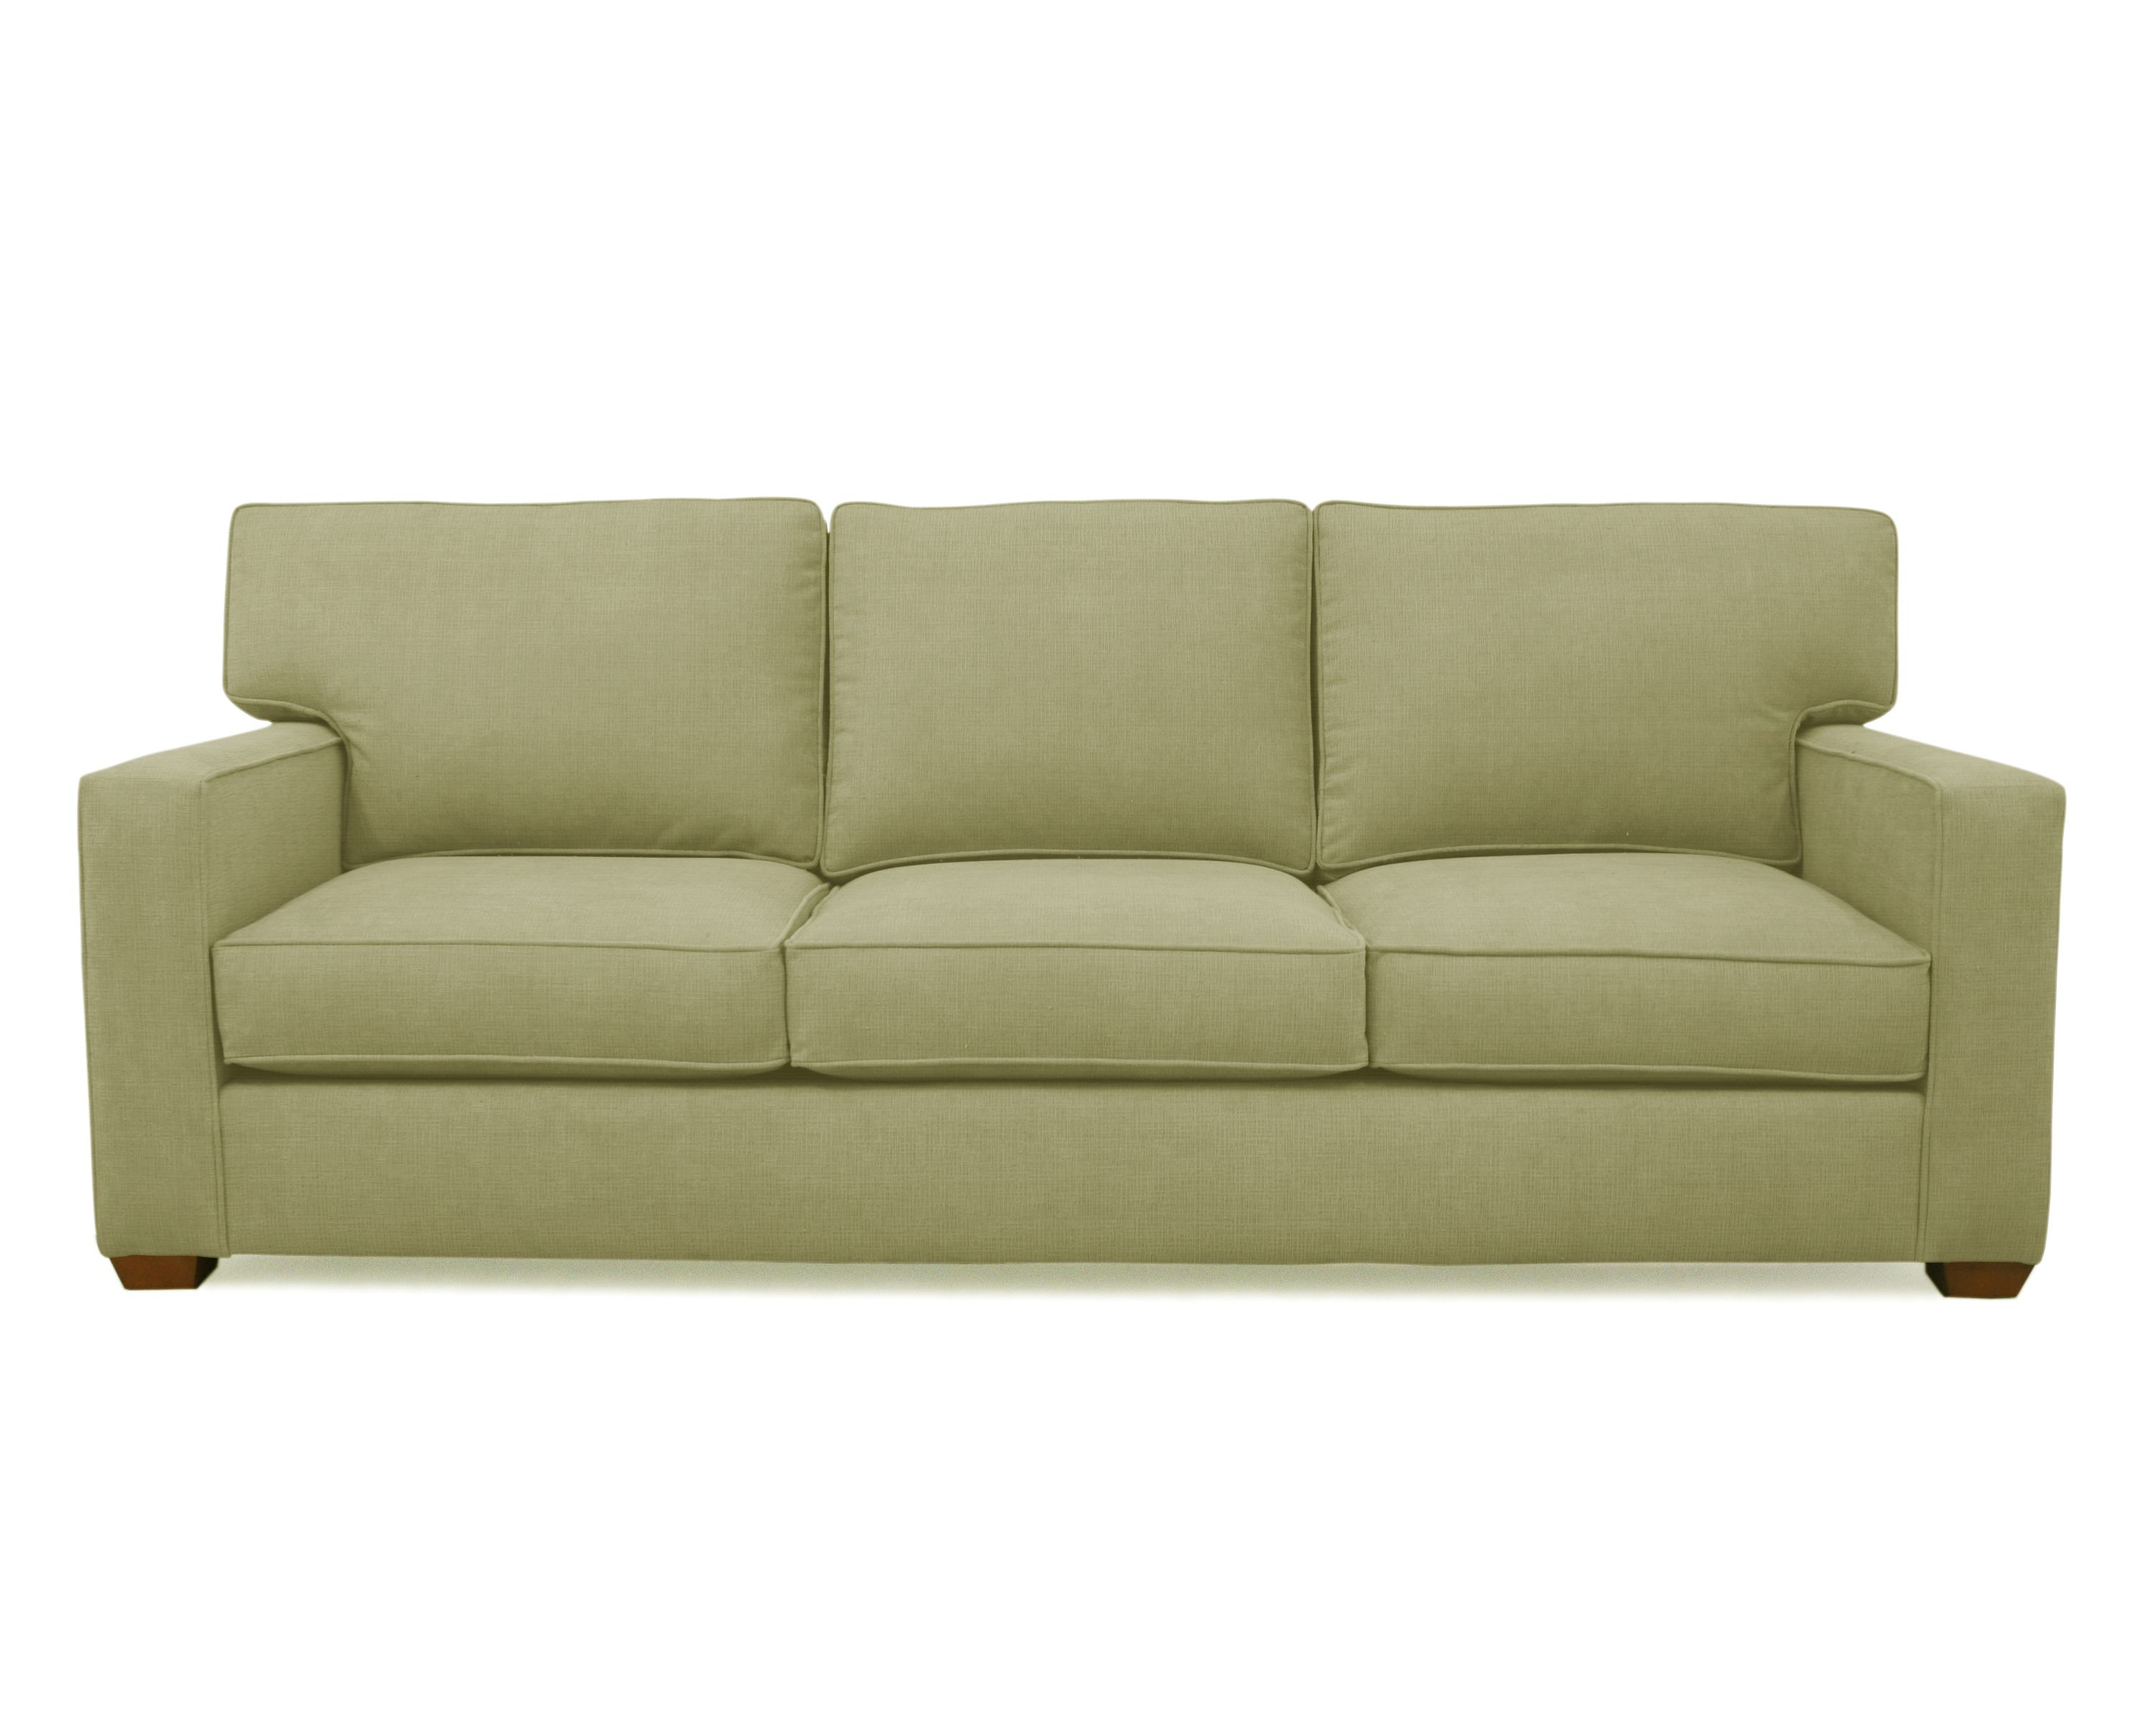 Hugo Sofa in Cement color Crypton fabric doesn t stain isn t